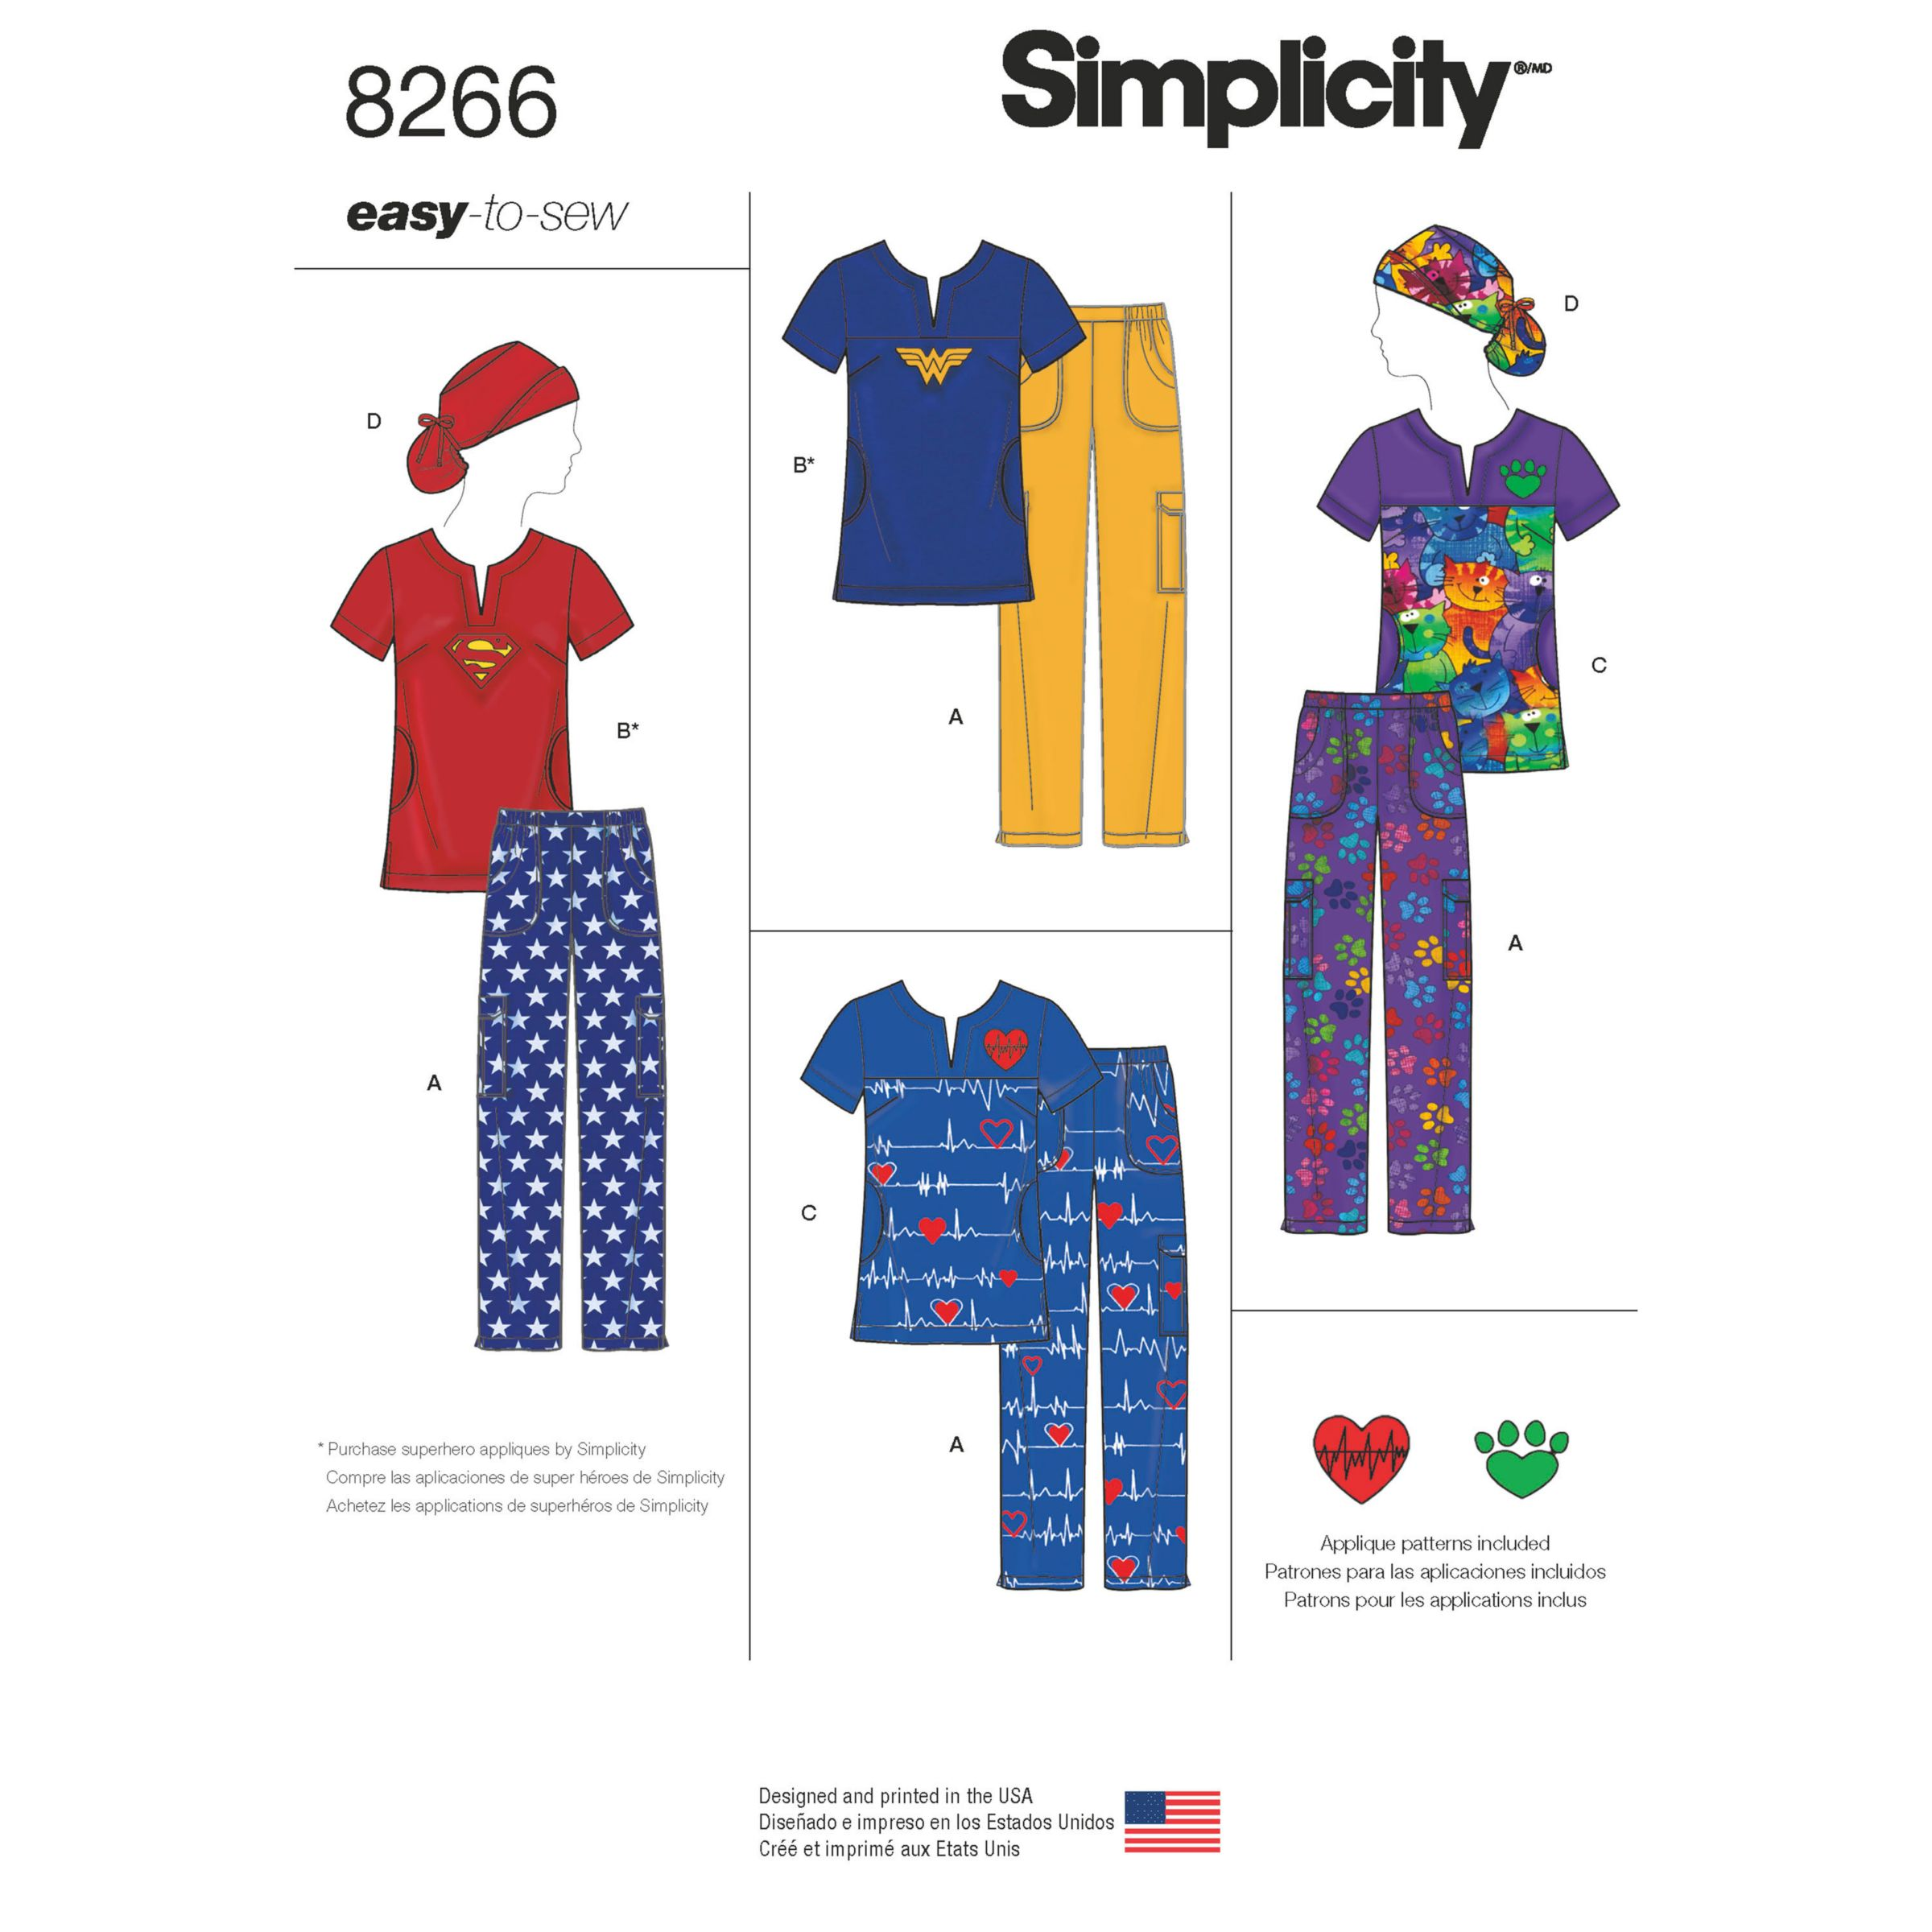 Simplicity Simplicity Misses' Easy to Sew Scrubs and Loungewear Sewing Pattern, 8266